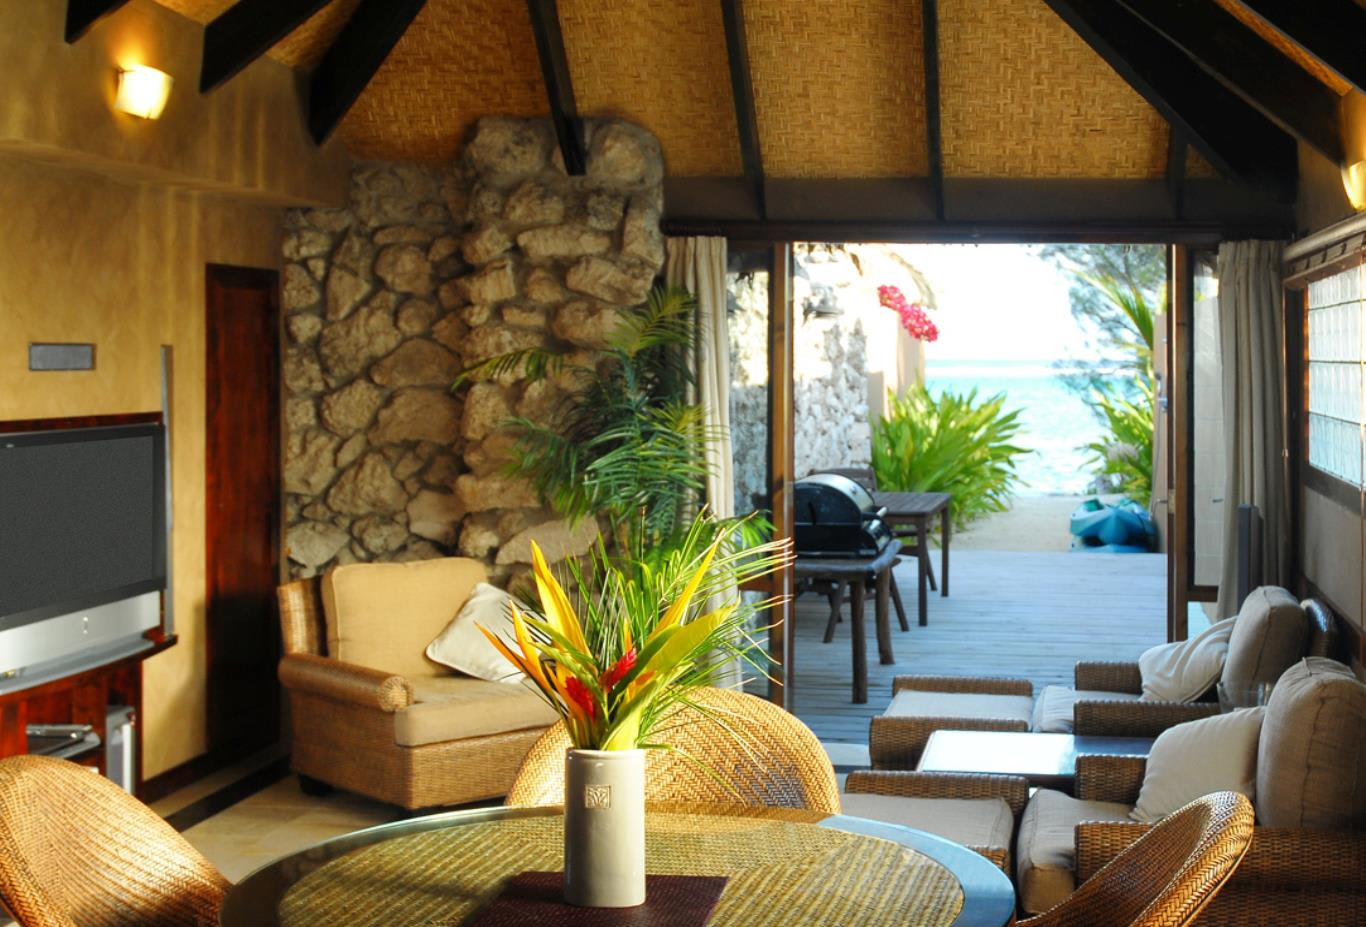 Beachside-Romance-Villa-interior